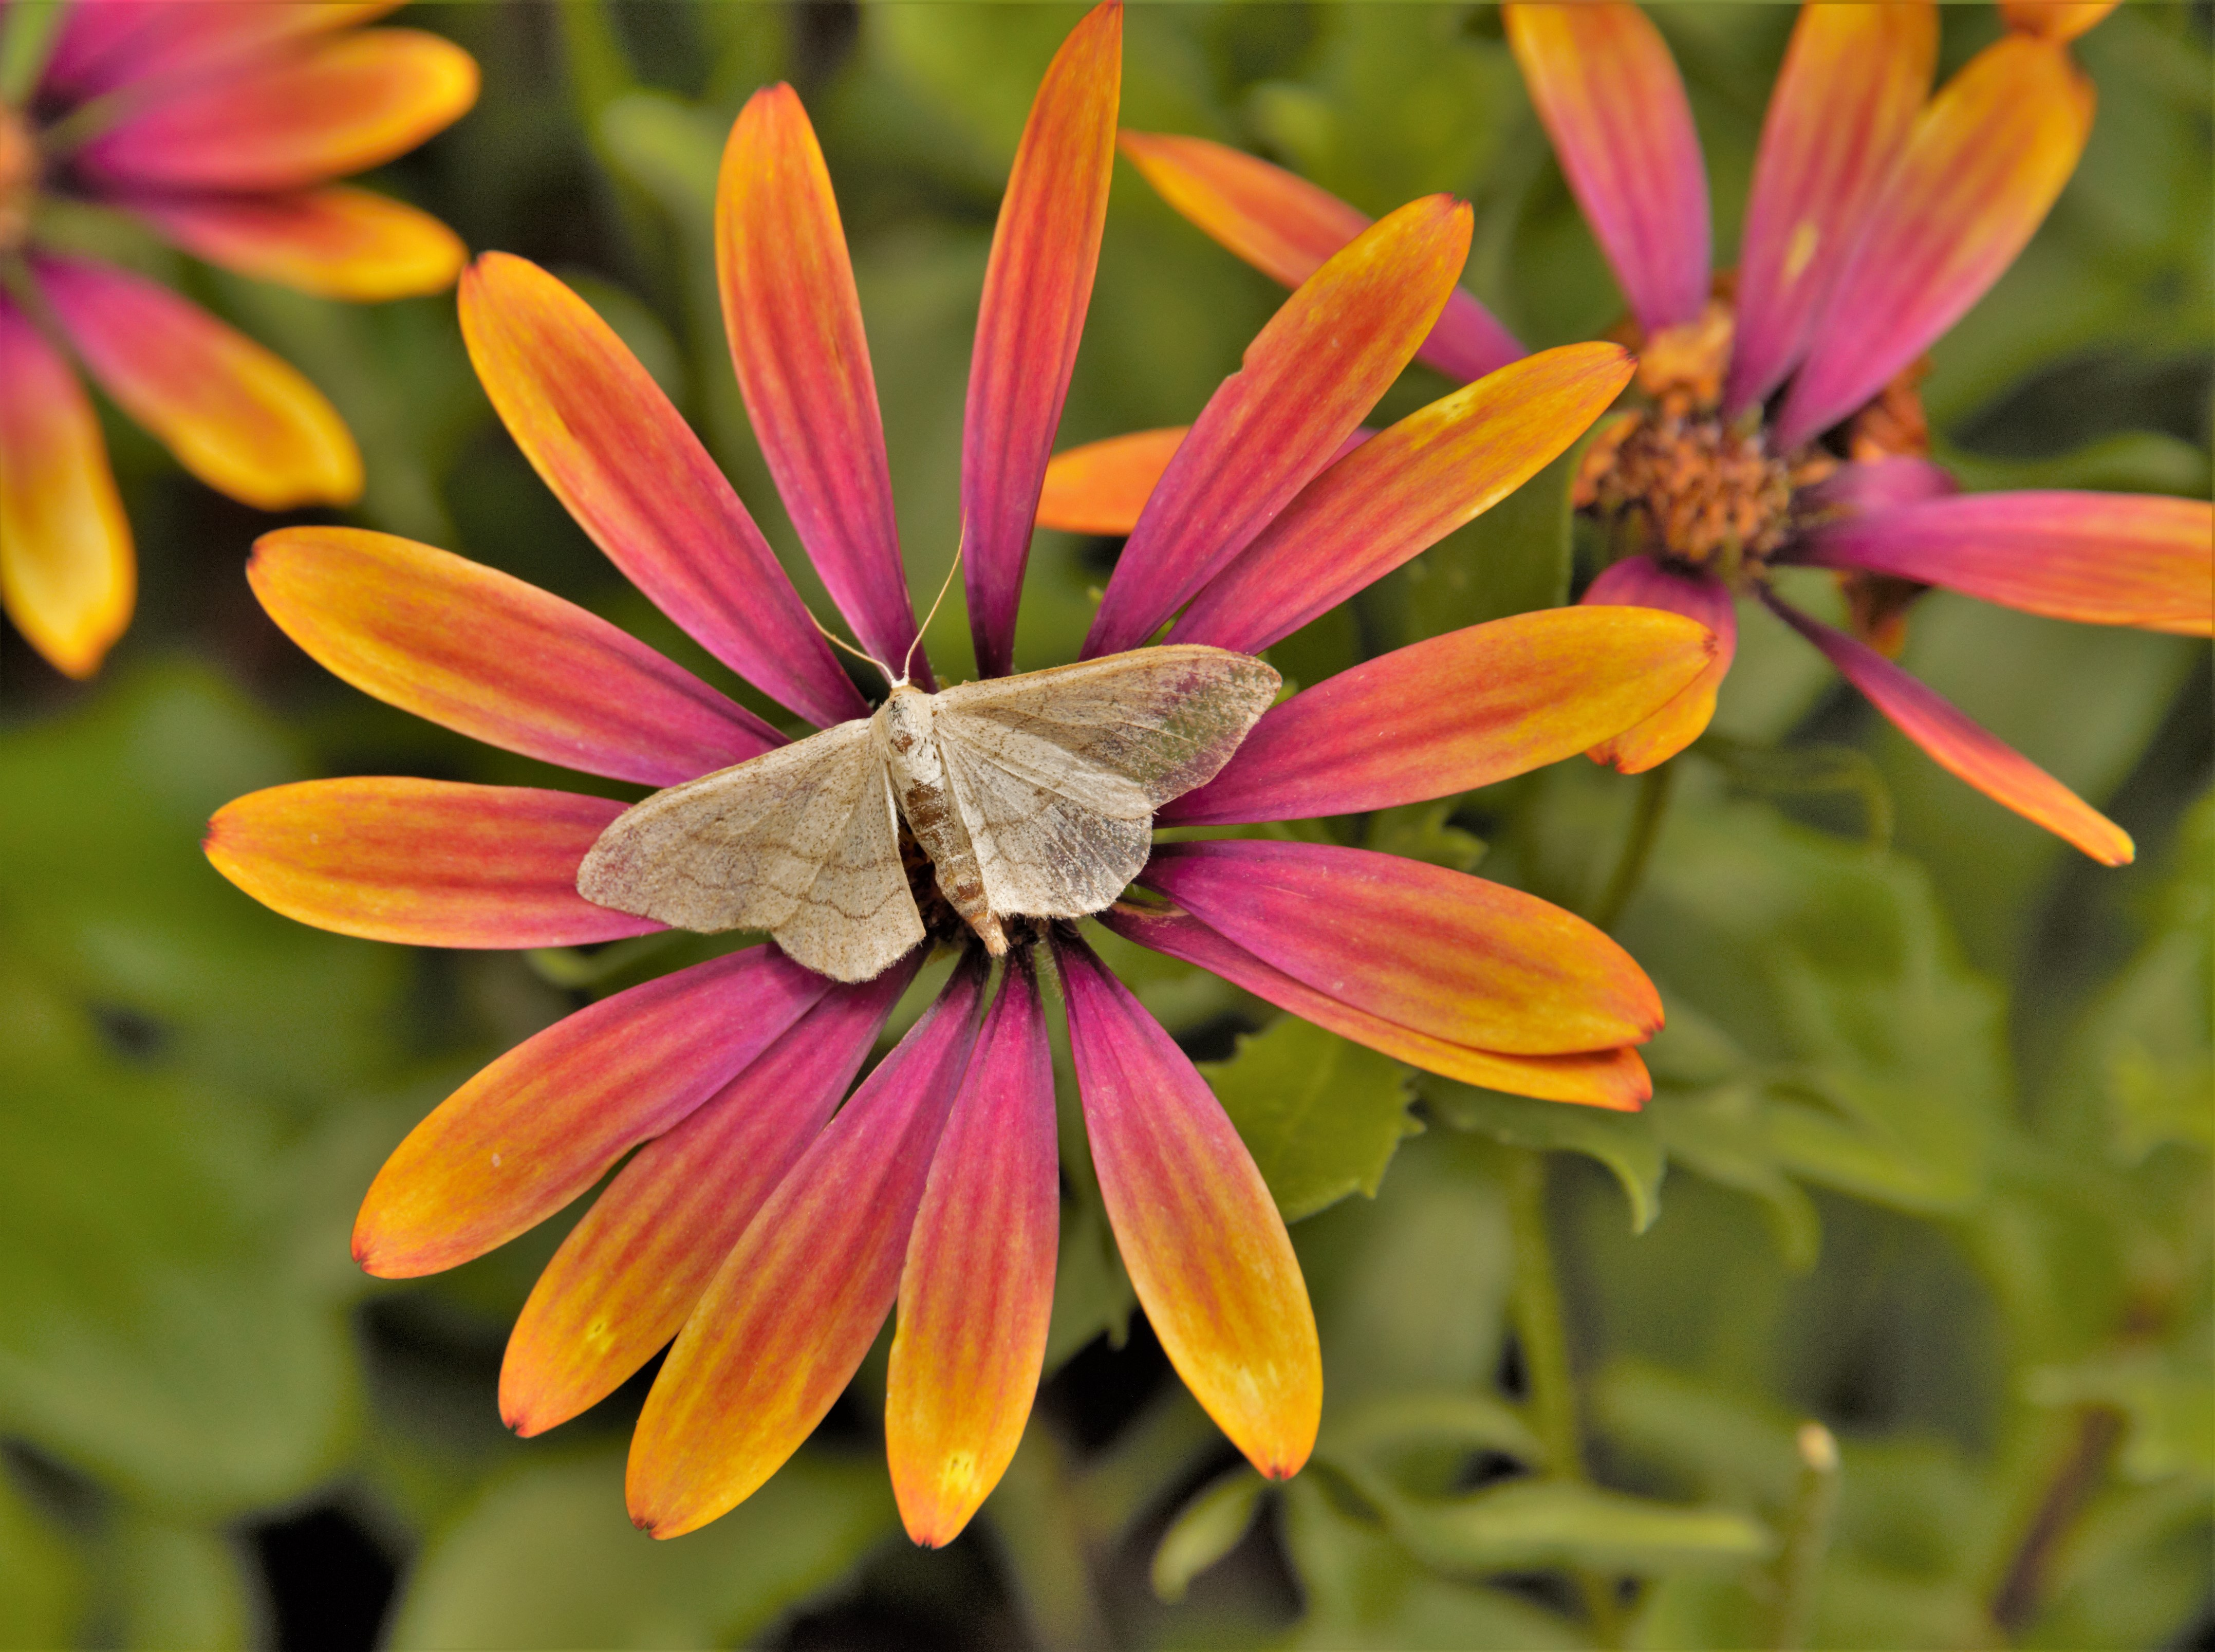 moth-on-flower-by-pal-waite